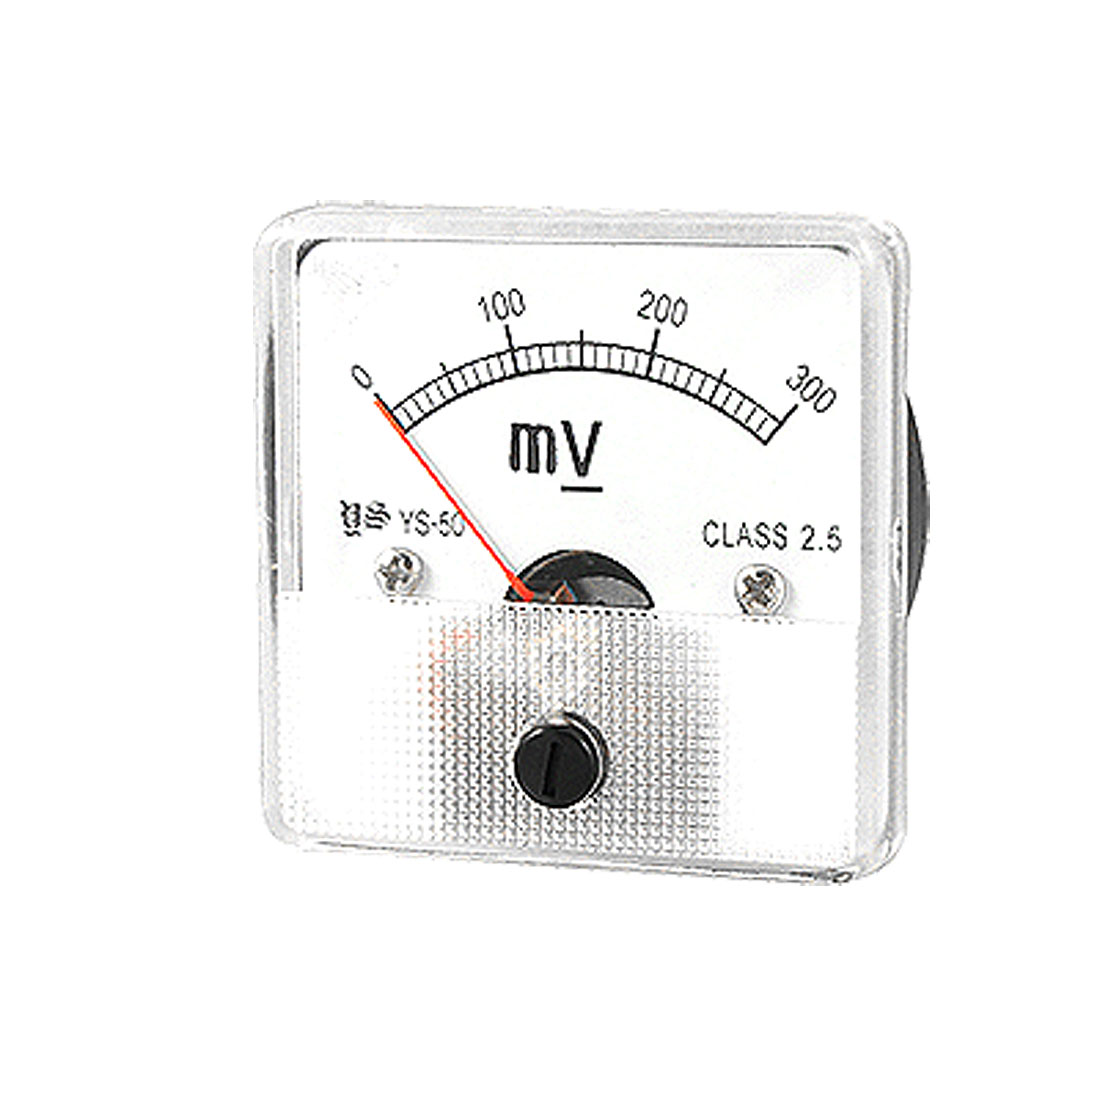 DC 0-300mV Fine Tuning Dial Voltmeter Voltage Panel Meter